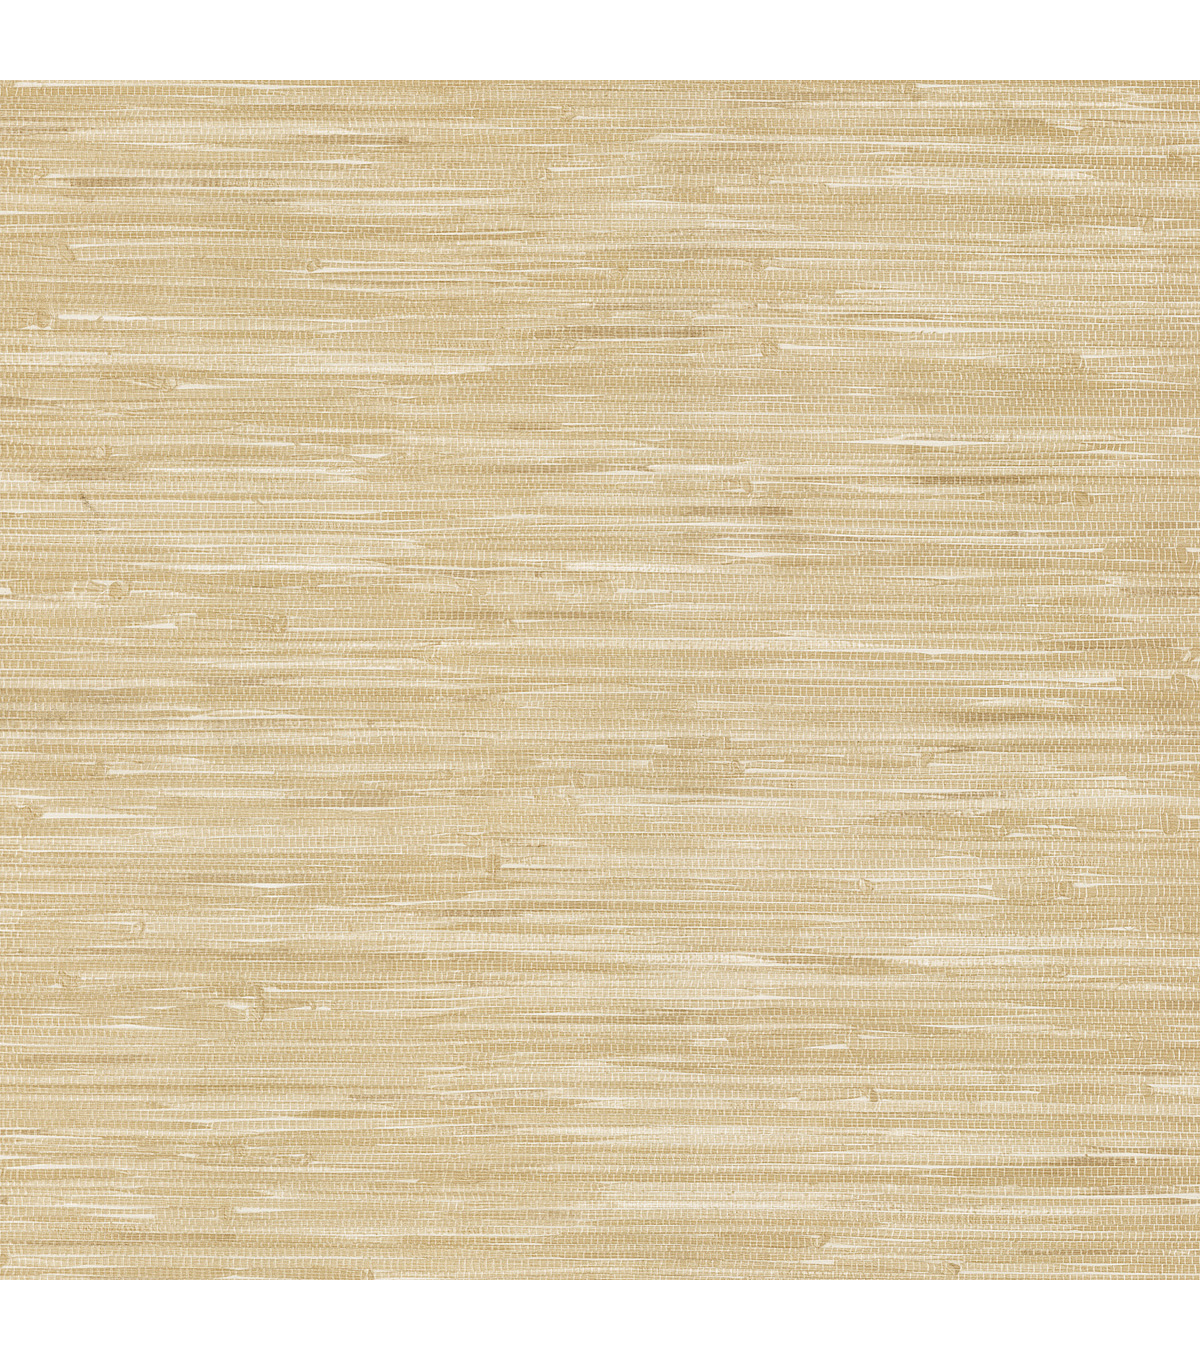 Lepeka Beige Grasscloth Wallpaper Sample